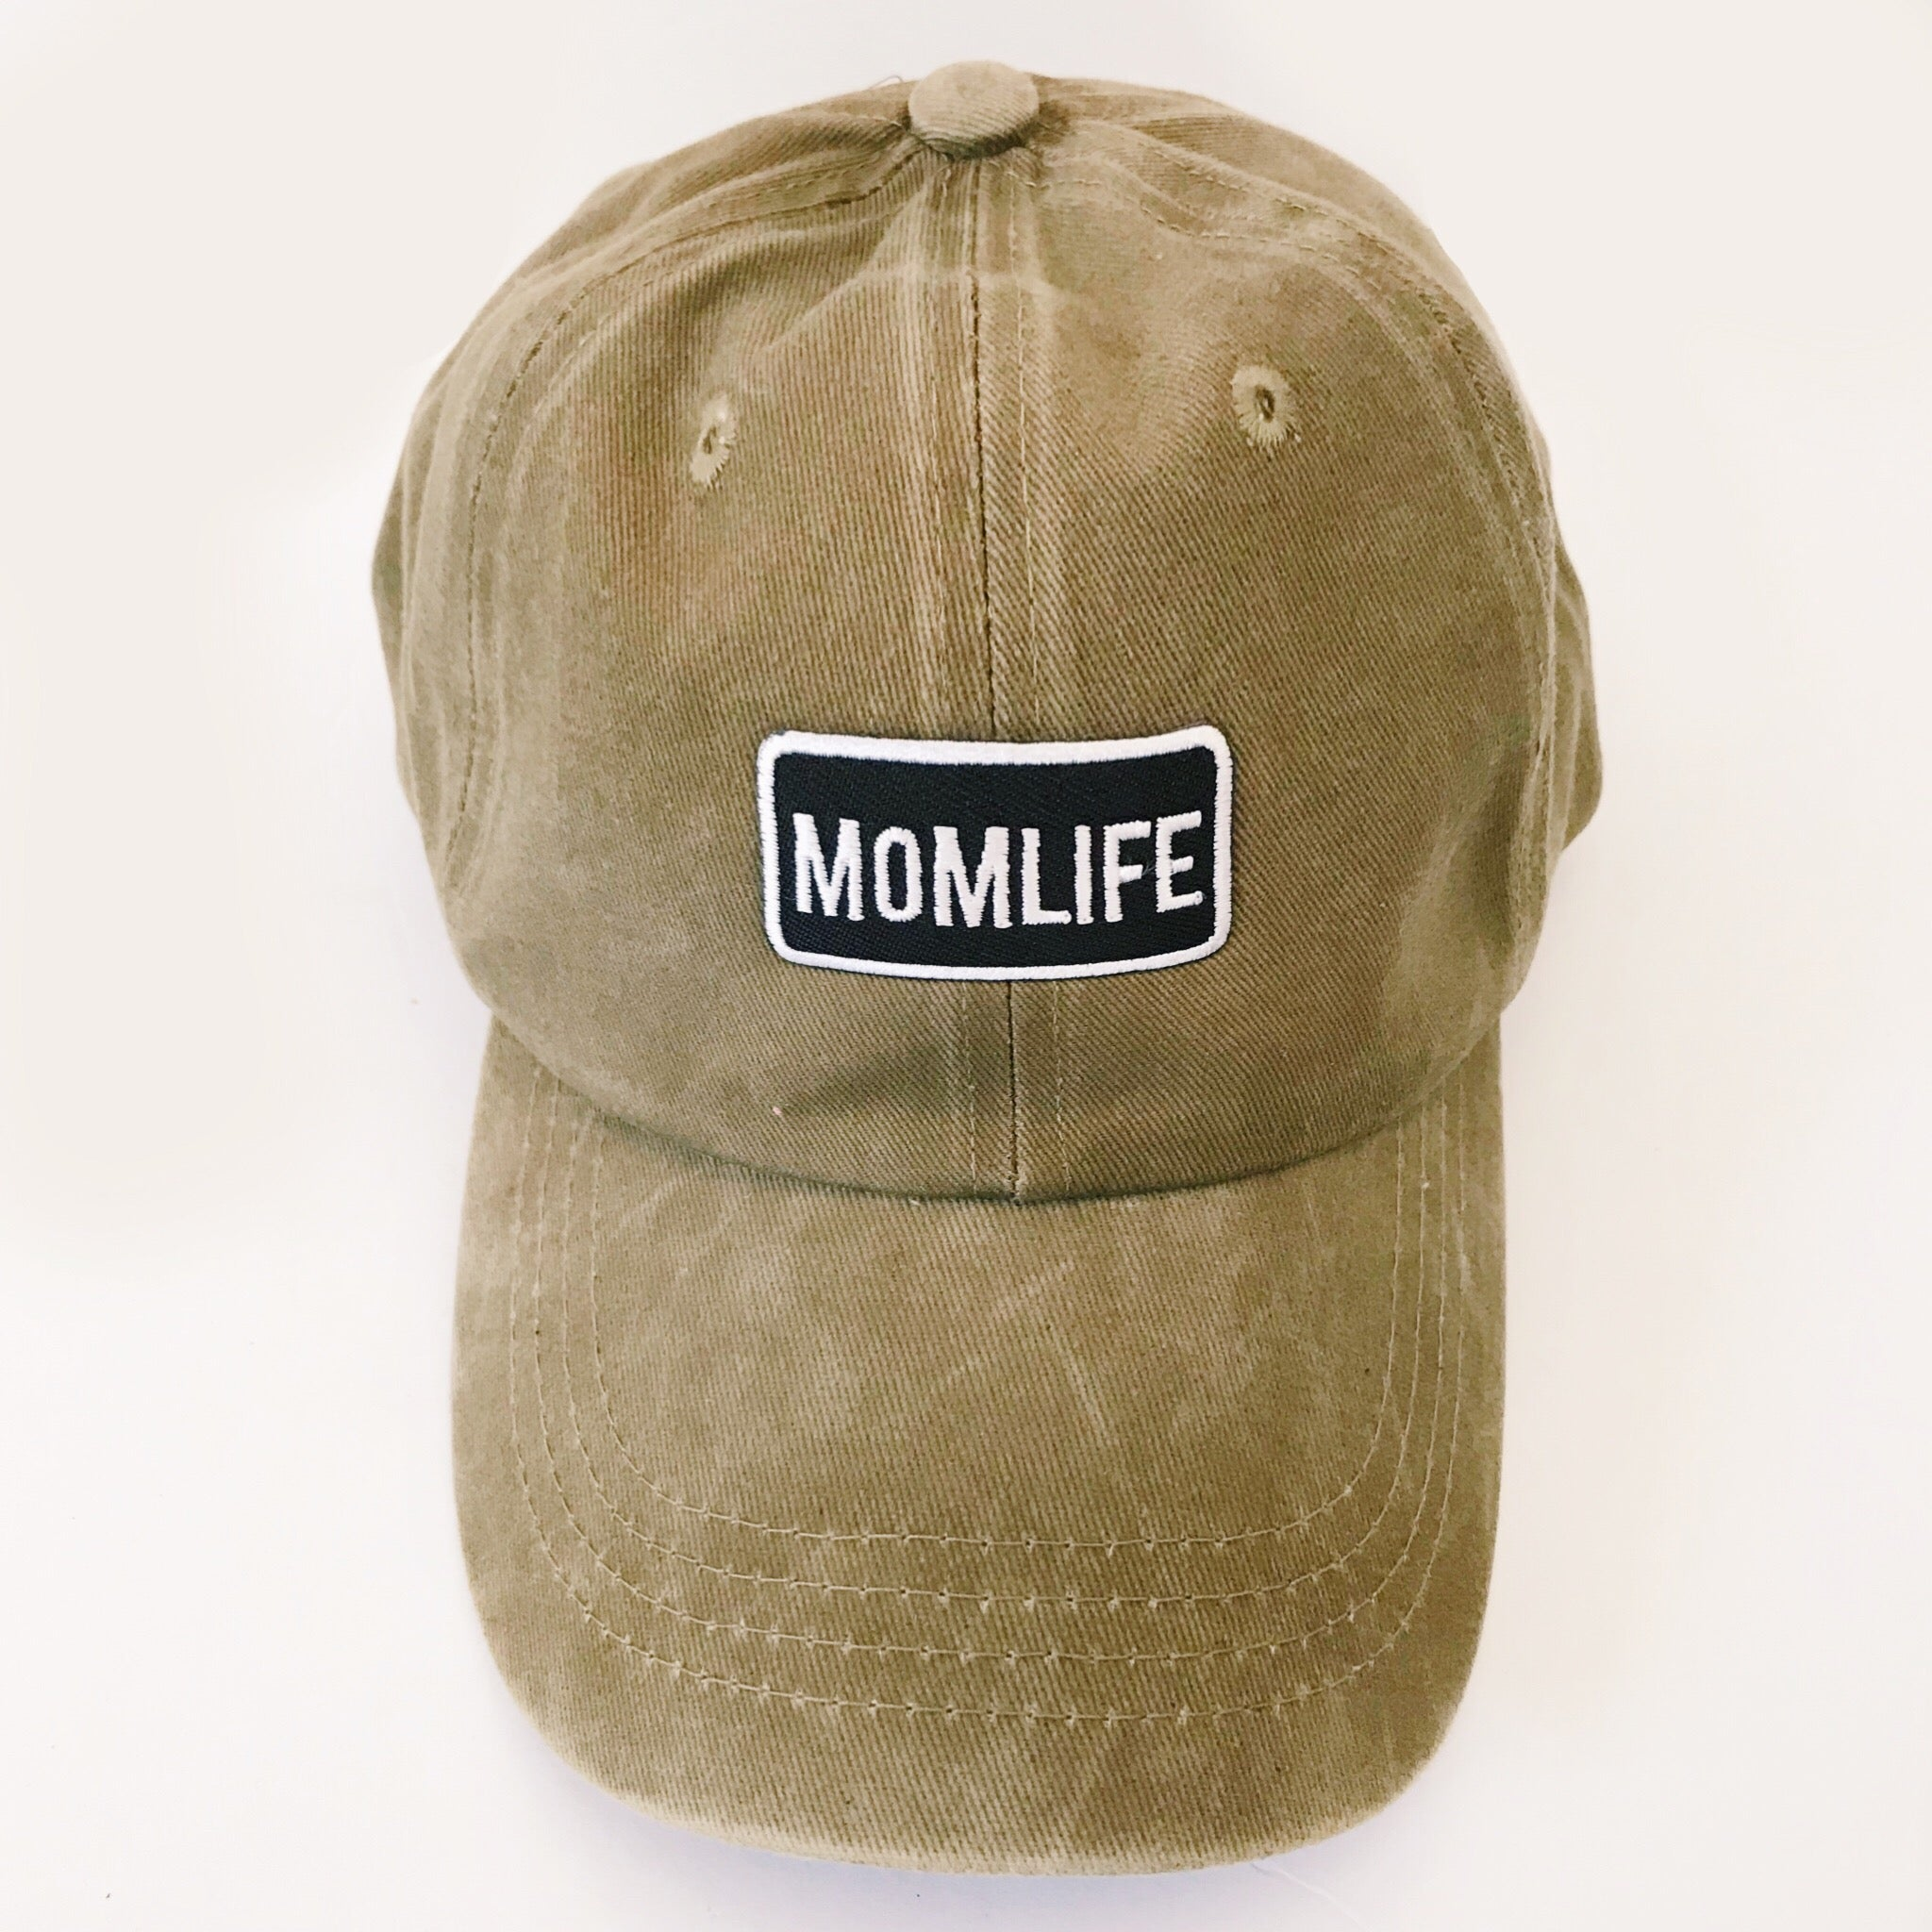 Momlife Embroidered Baseball Cap